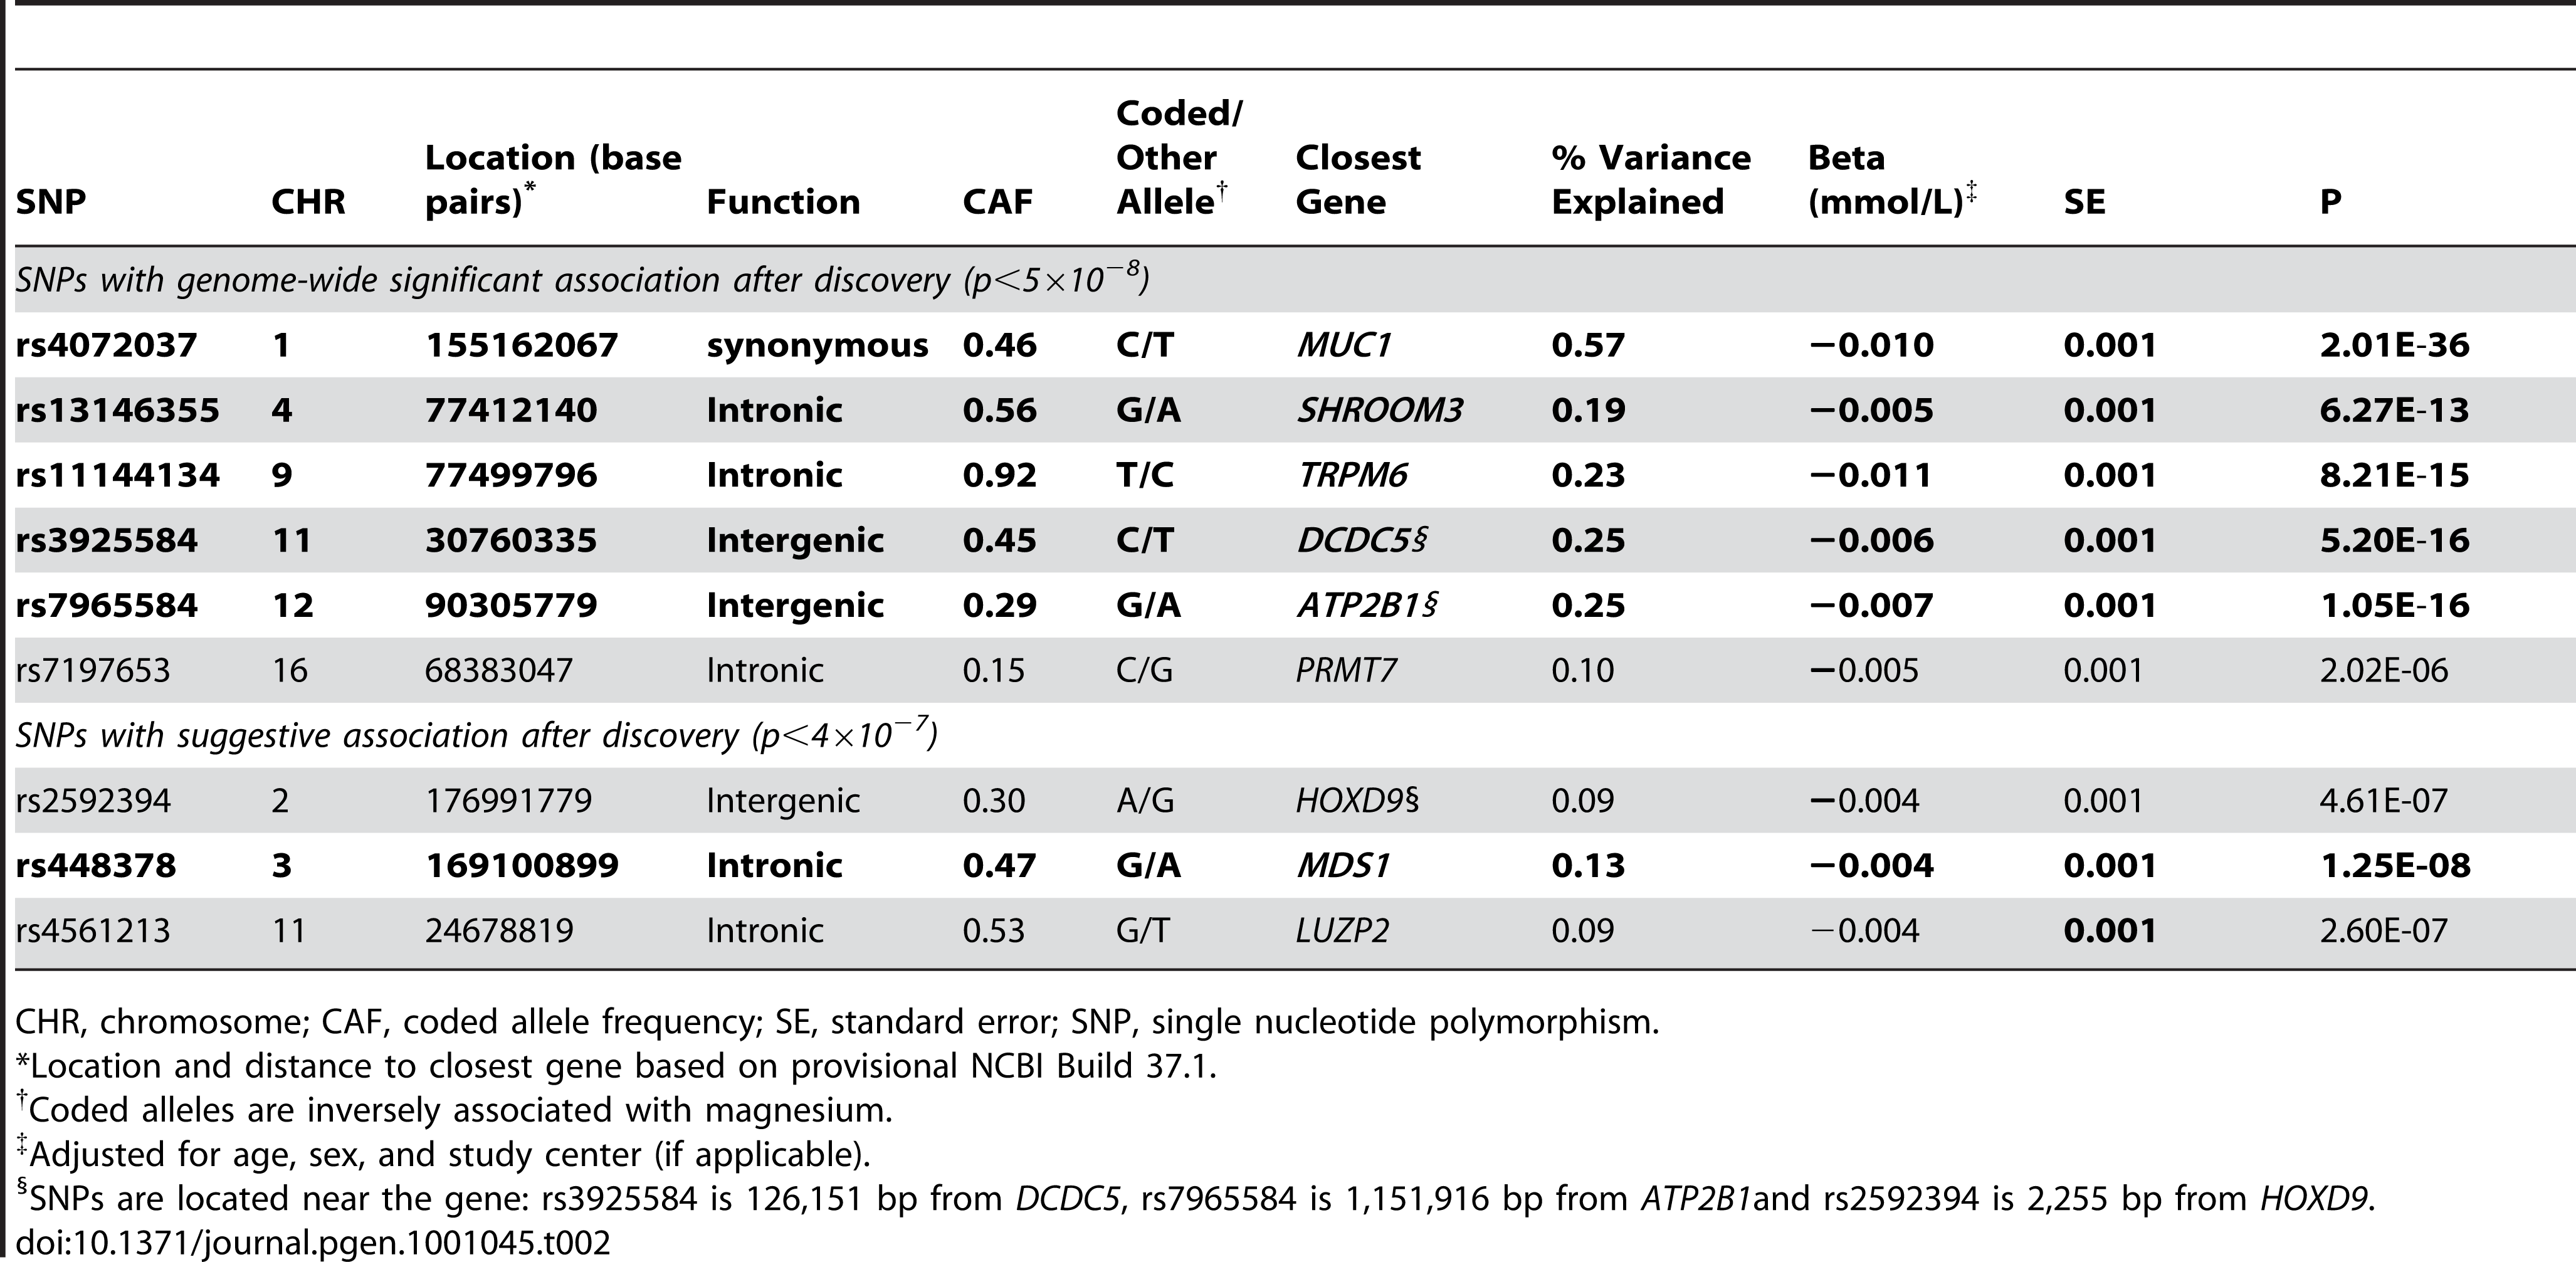 Associations between serum magnesium levels and the lead regional genome-wide significant SNPs in the combined discovery (N = 15,366) and replication (N = 8,463) samples.